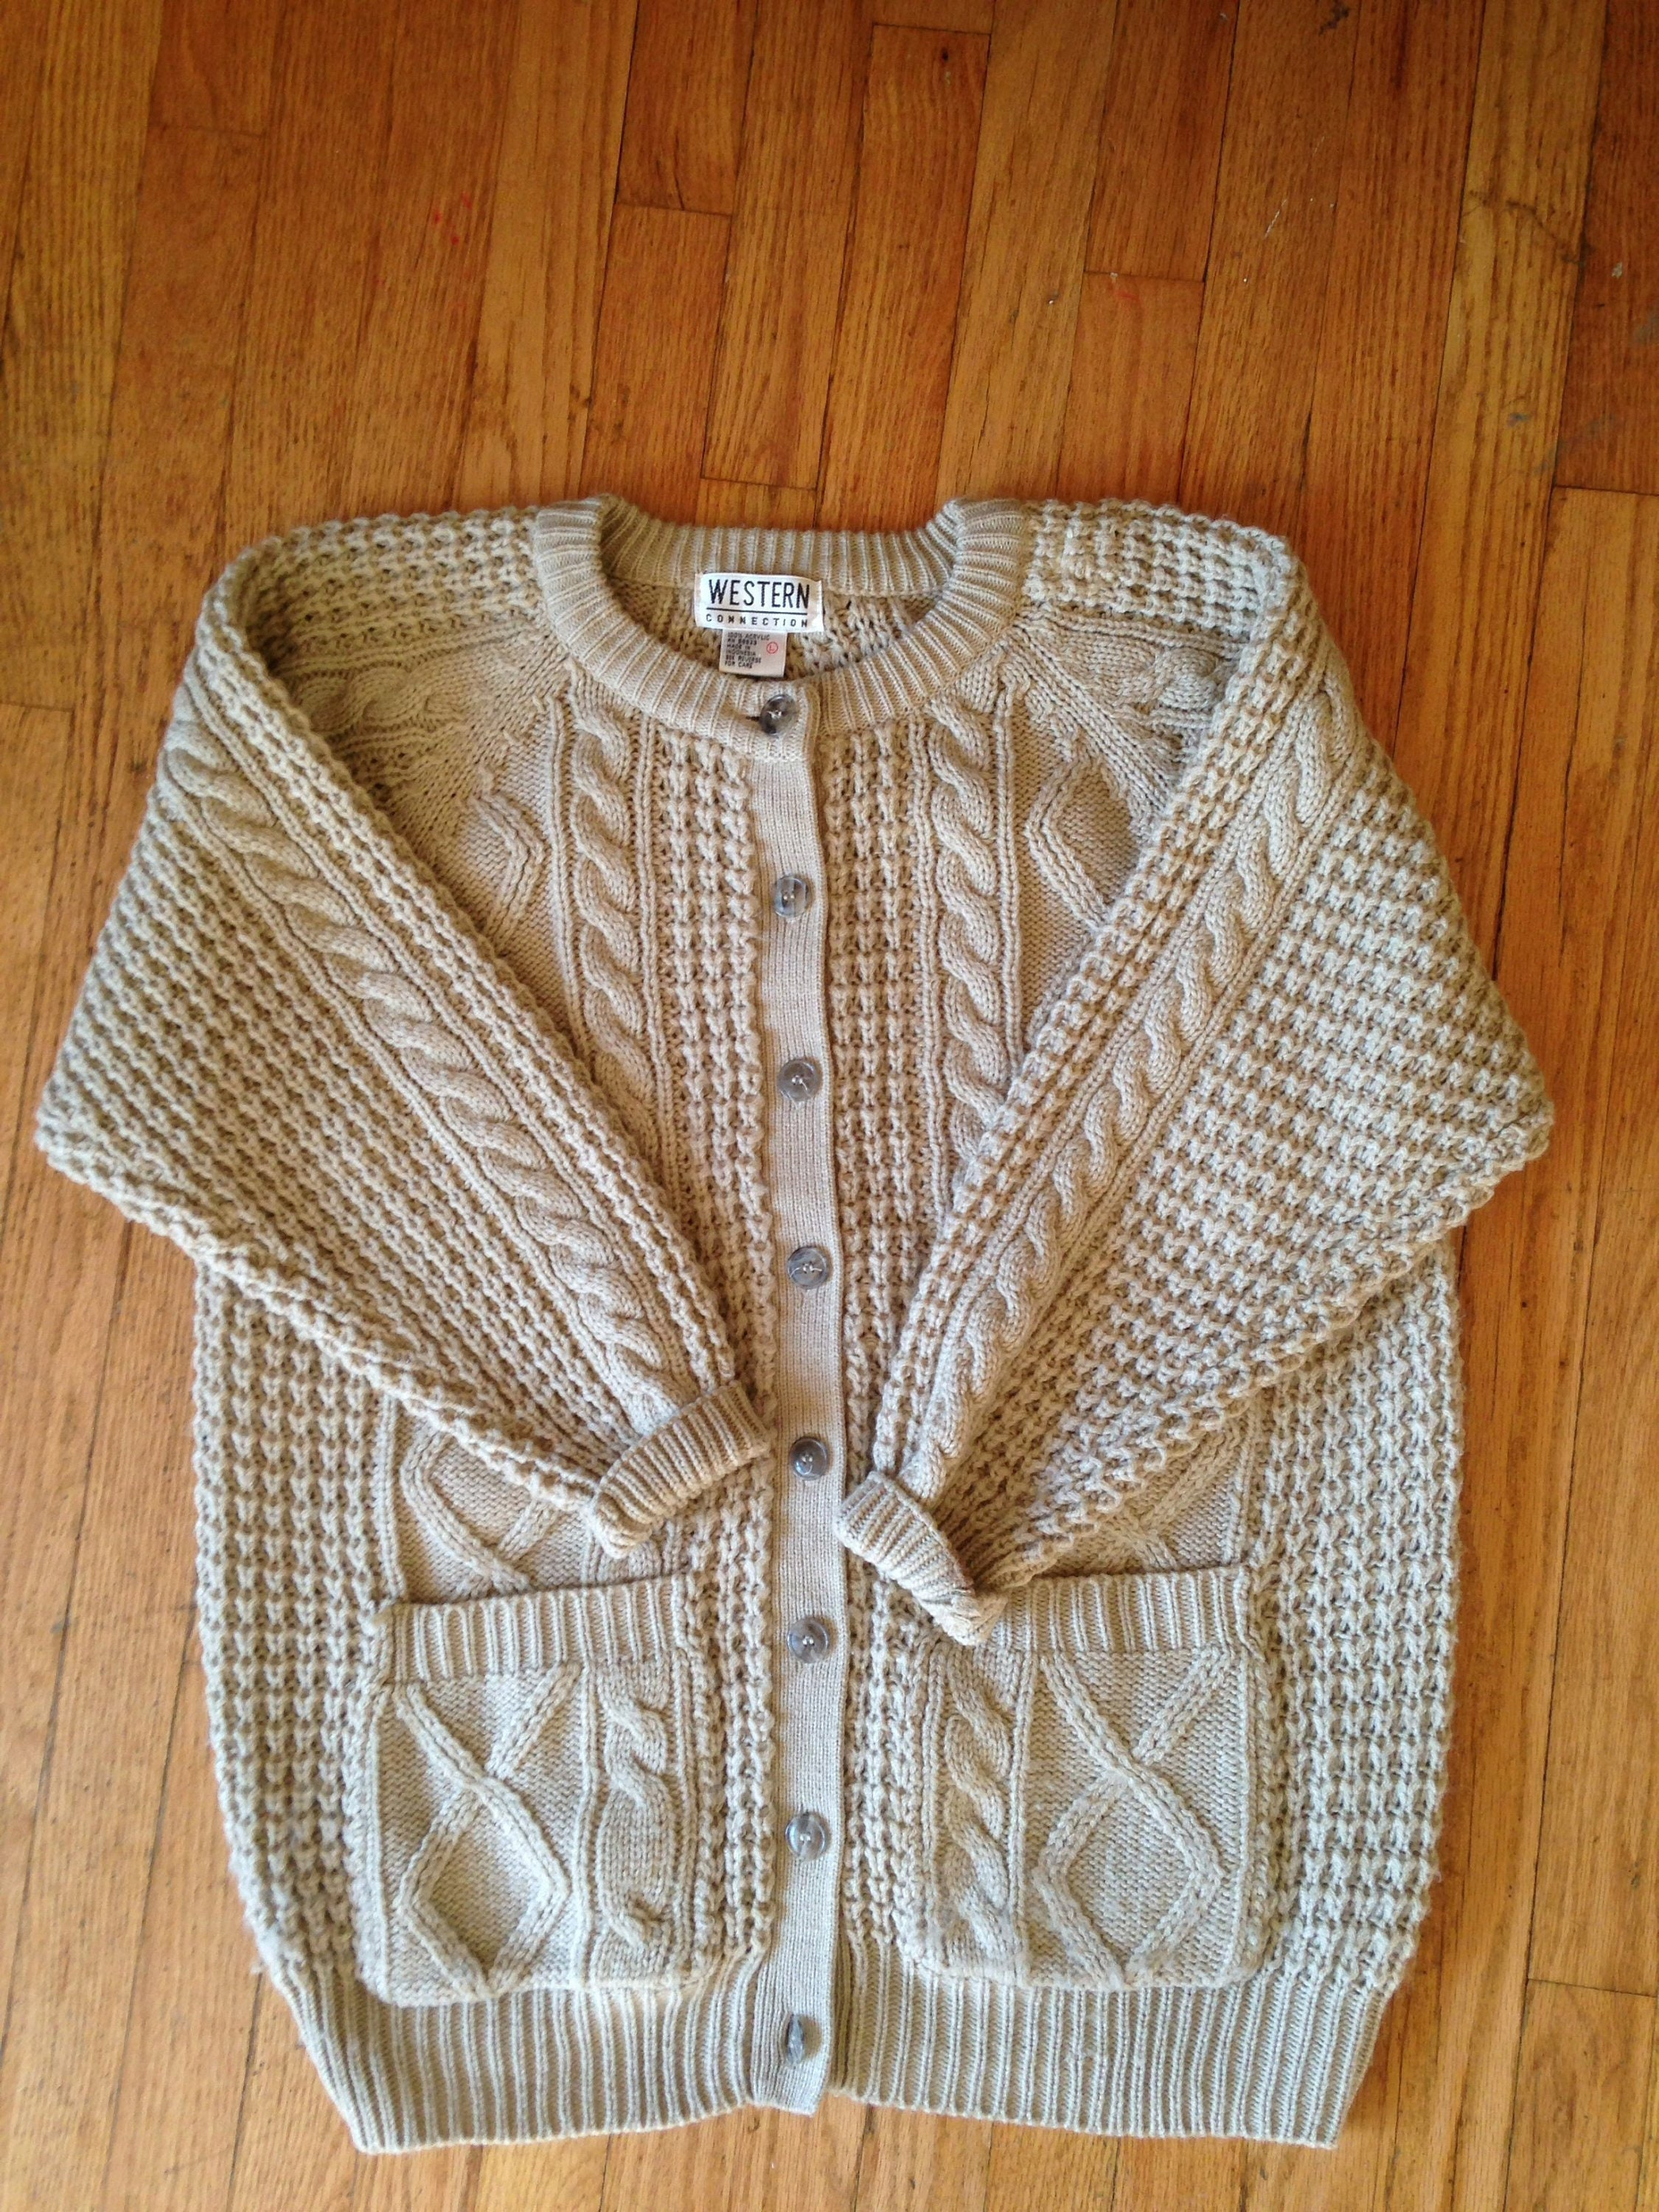 9d9d15a052 Vintage Beige Cream Cable Knit Sweater Chunky Knit Cardigan